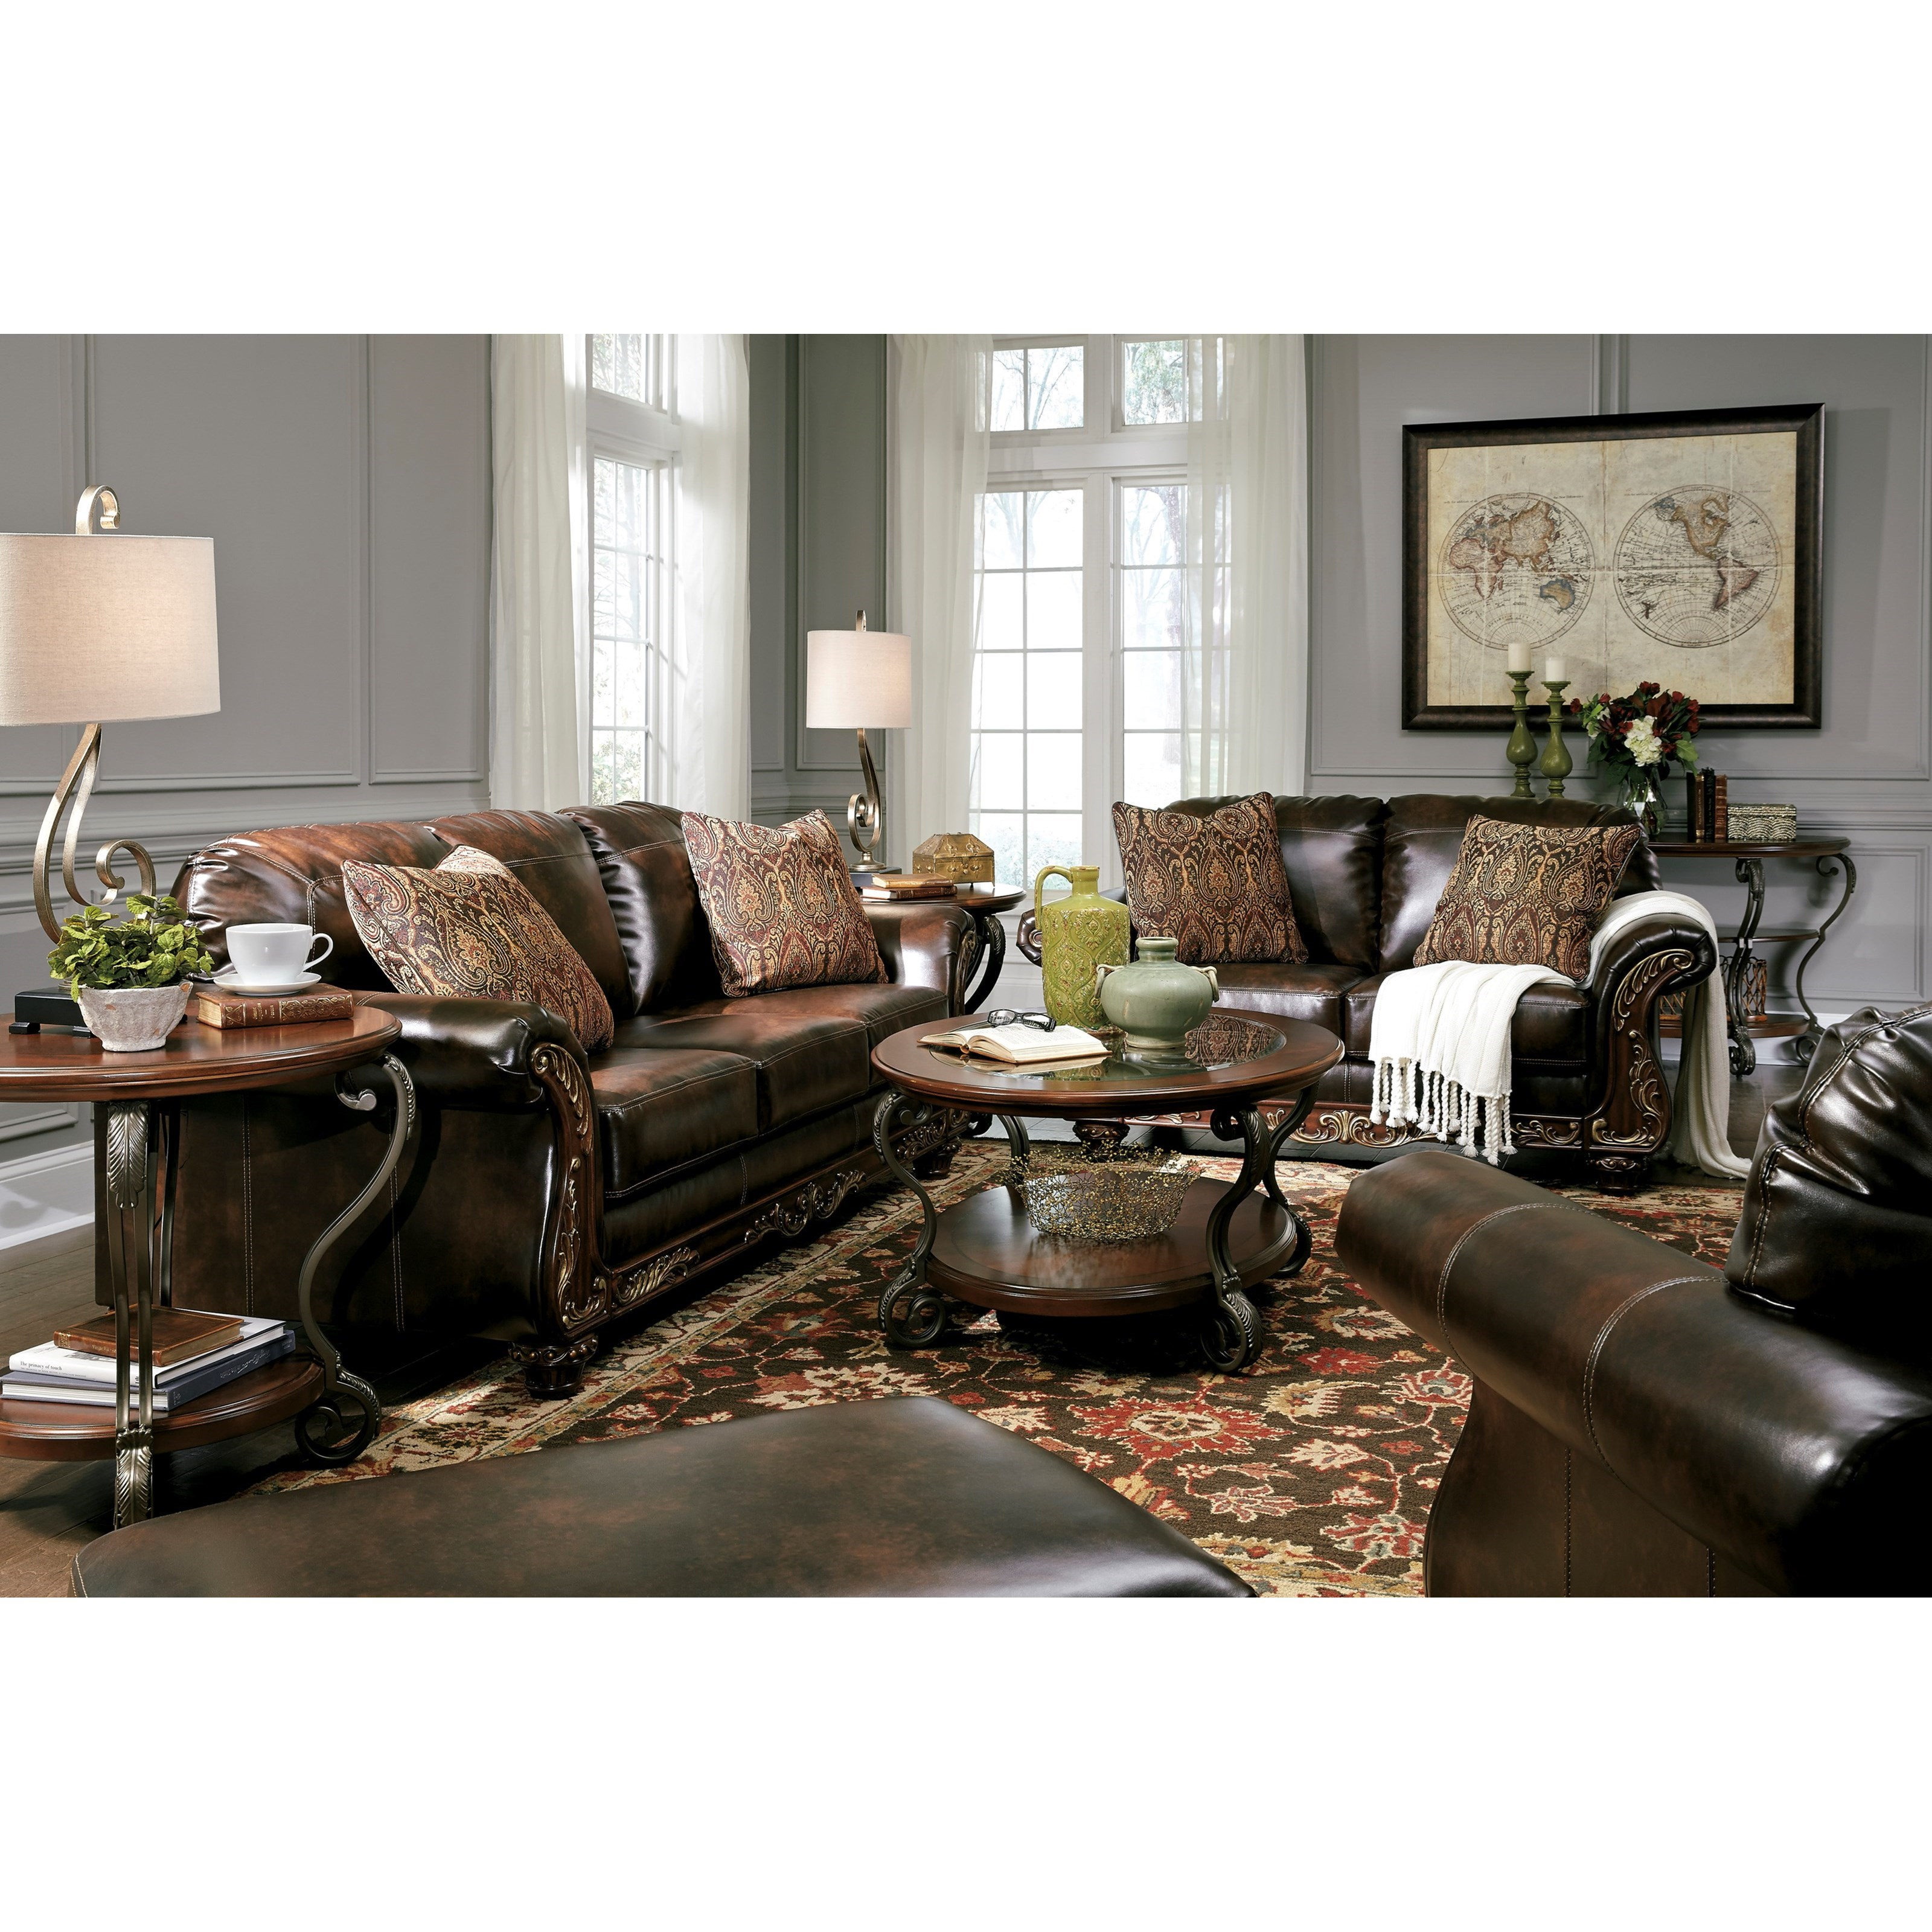 Signature Design by Ashley Vanceton Stationary Living Room